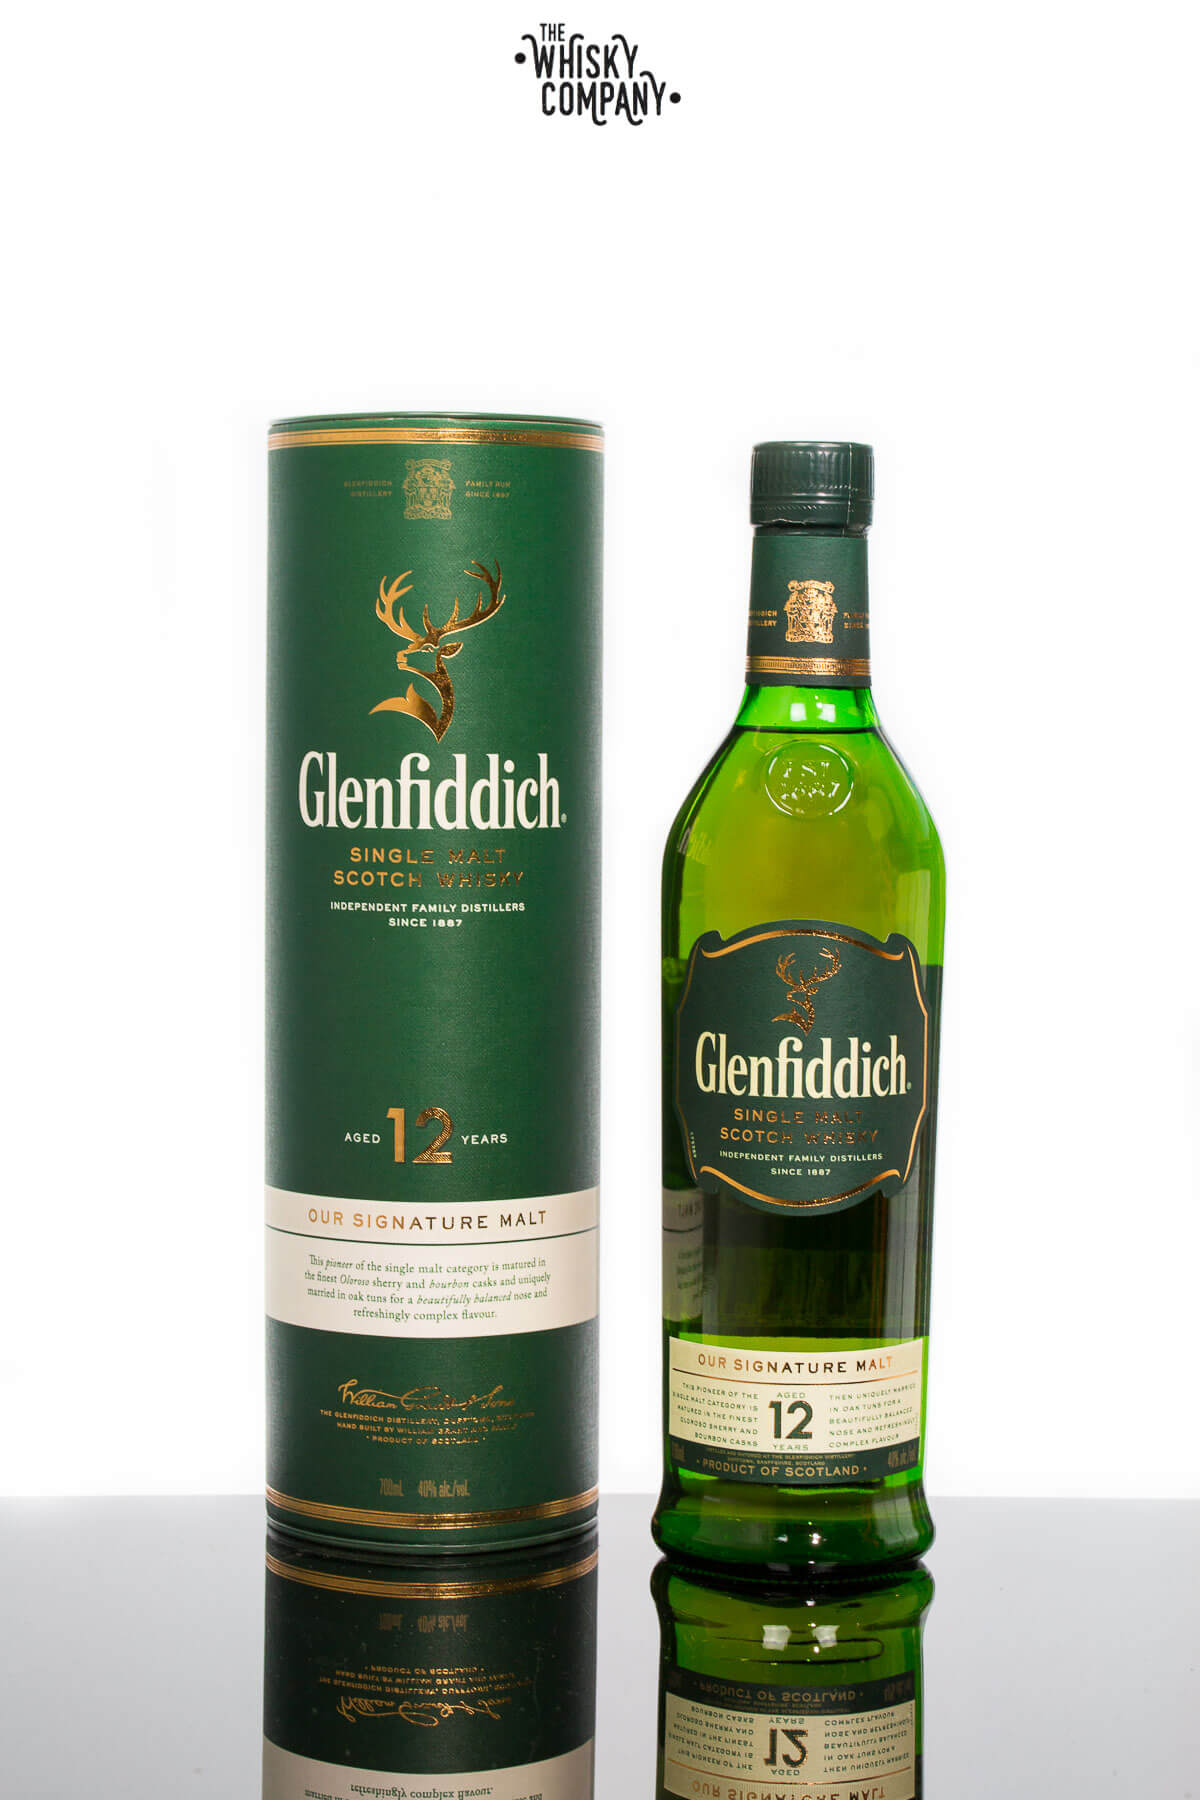 Glenfiddich Aged 12 Years Speyside Single Malt Scotch Whisky